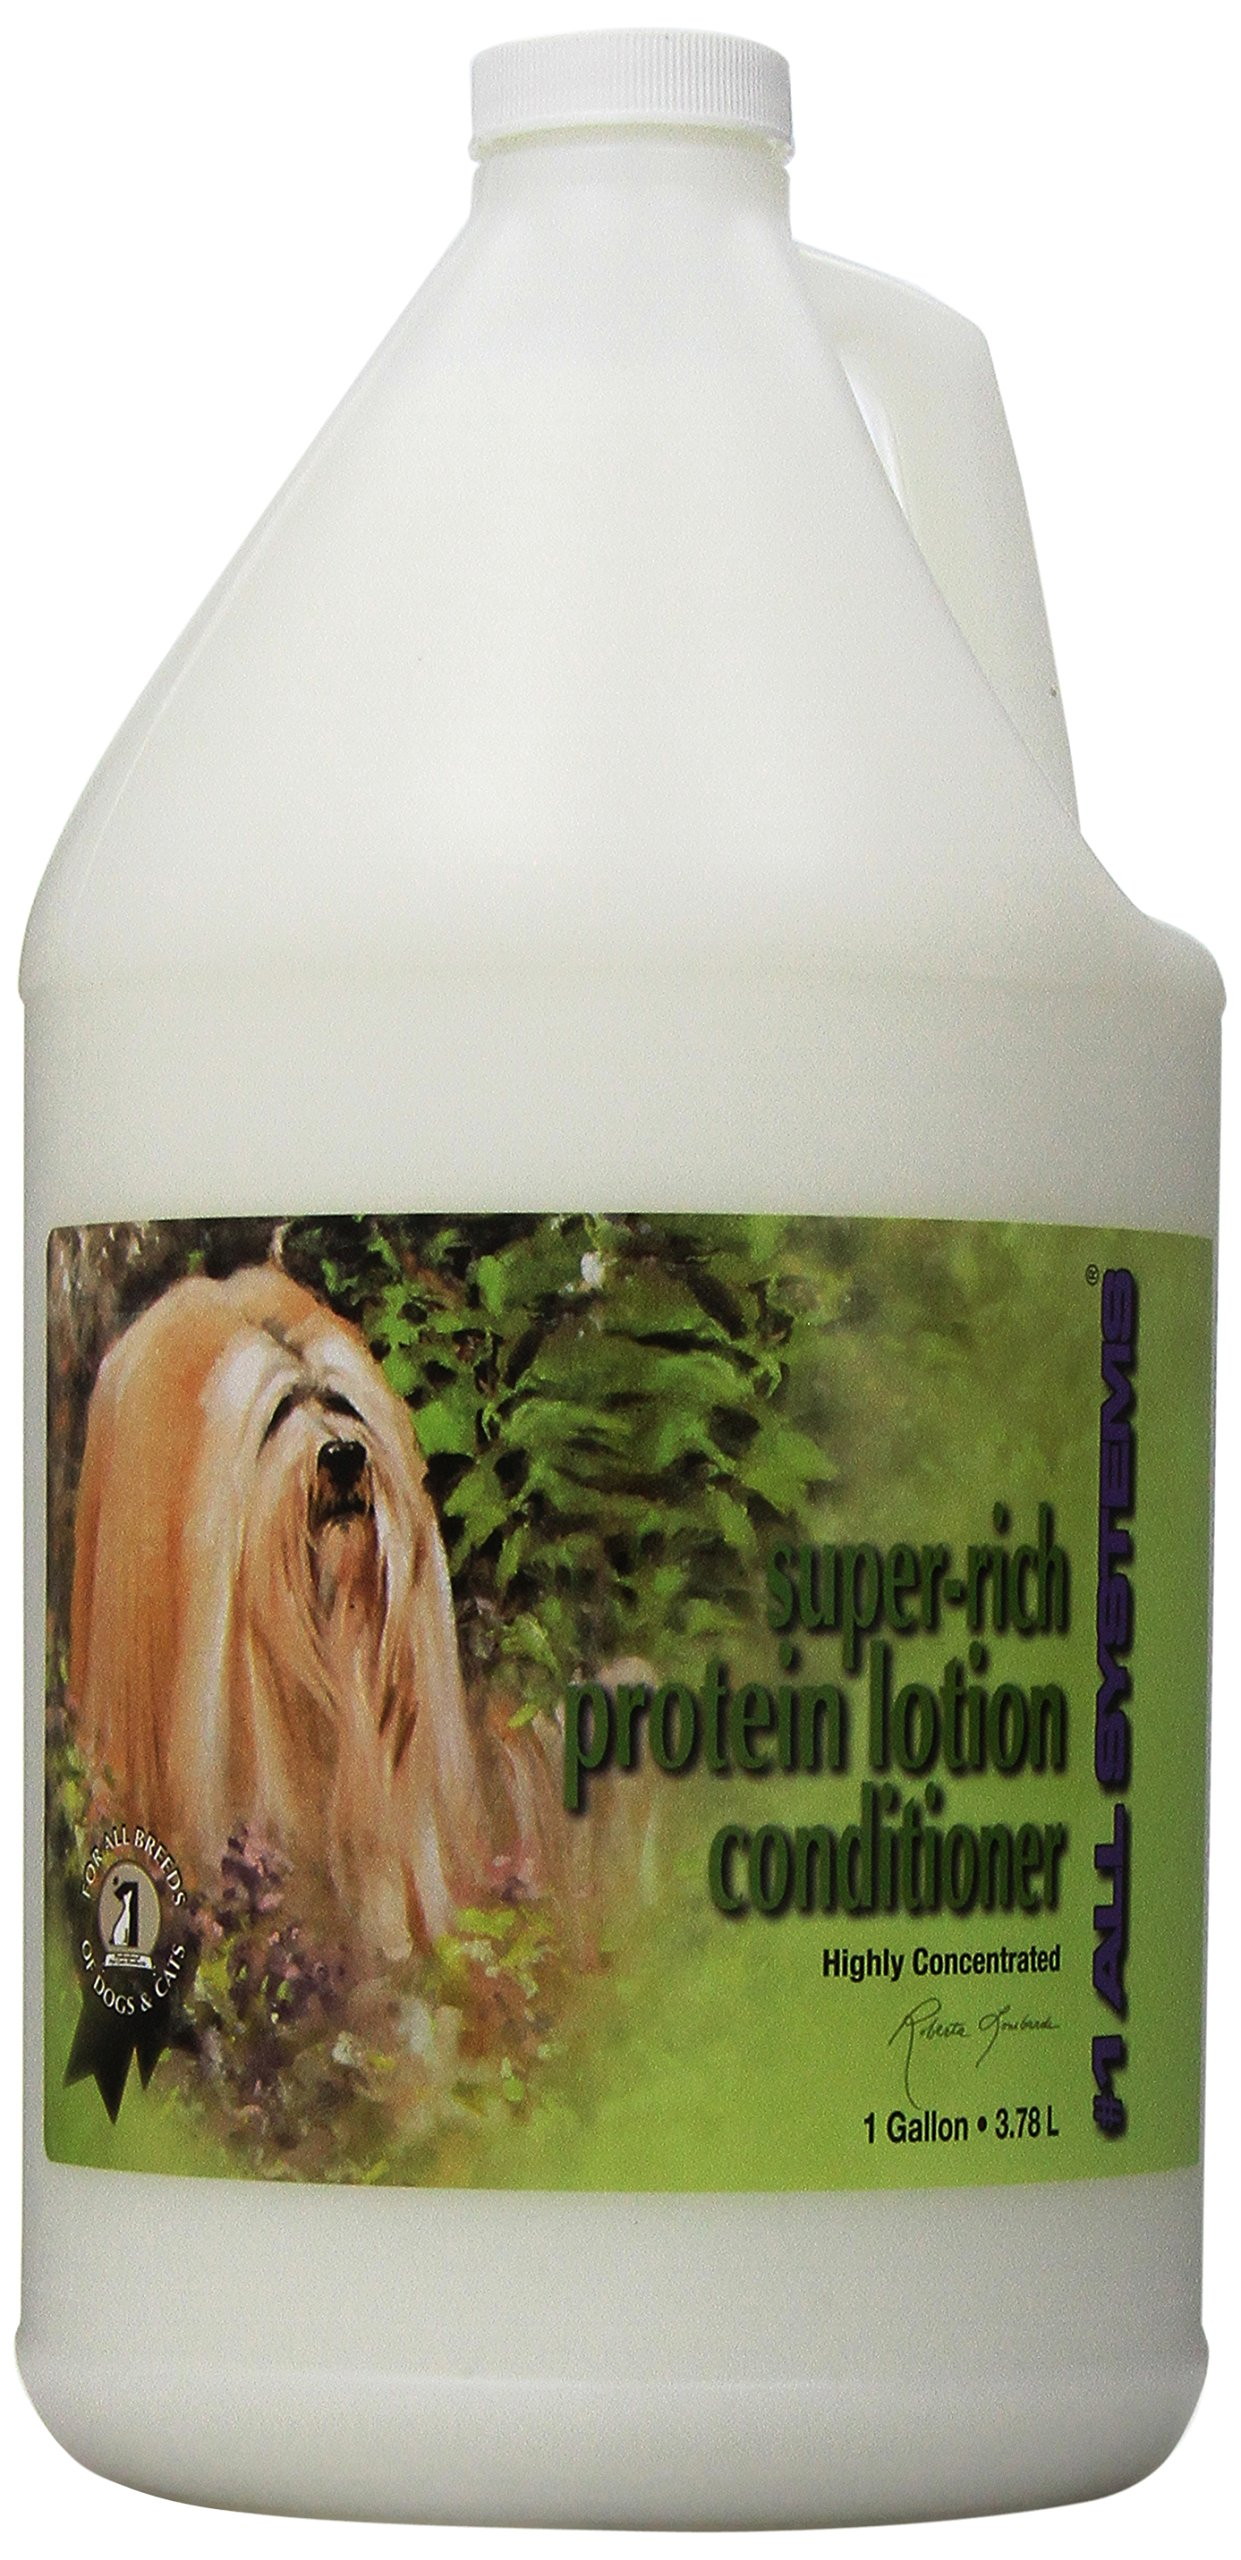 #1 All Systems Super-Rich Protein Lotion Pet Conditioner, 1-Gallon, Package may vary by #1 All Systems